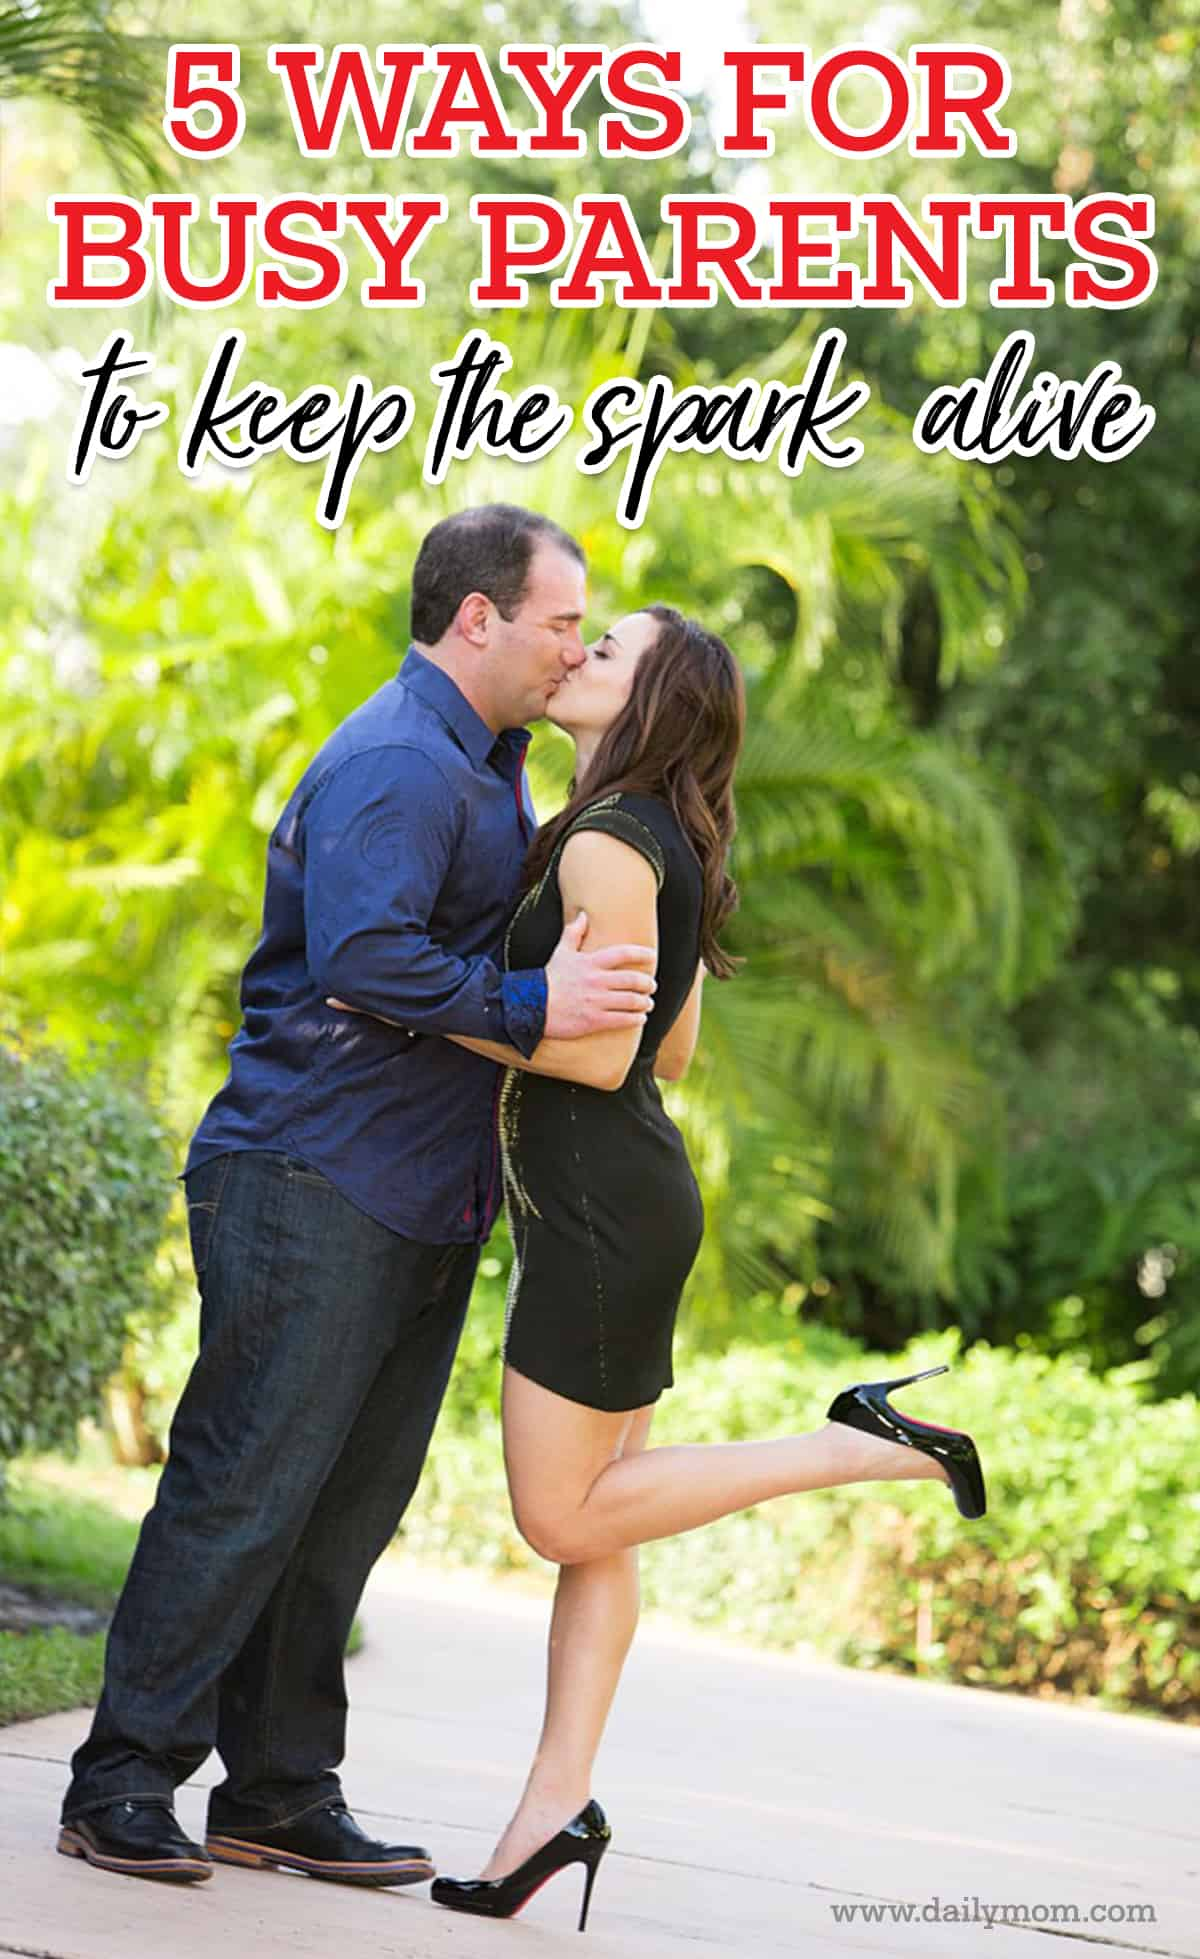 5 Ways for Busy Parents to Keep the Spark Alive 5 Daily Mom Parents Portal